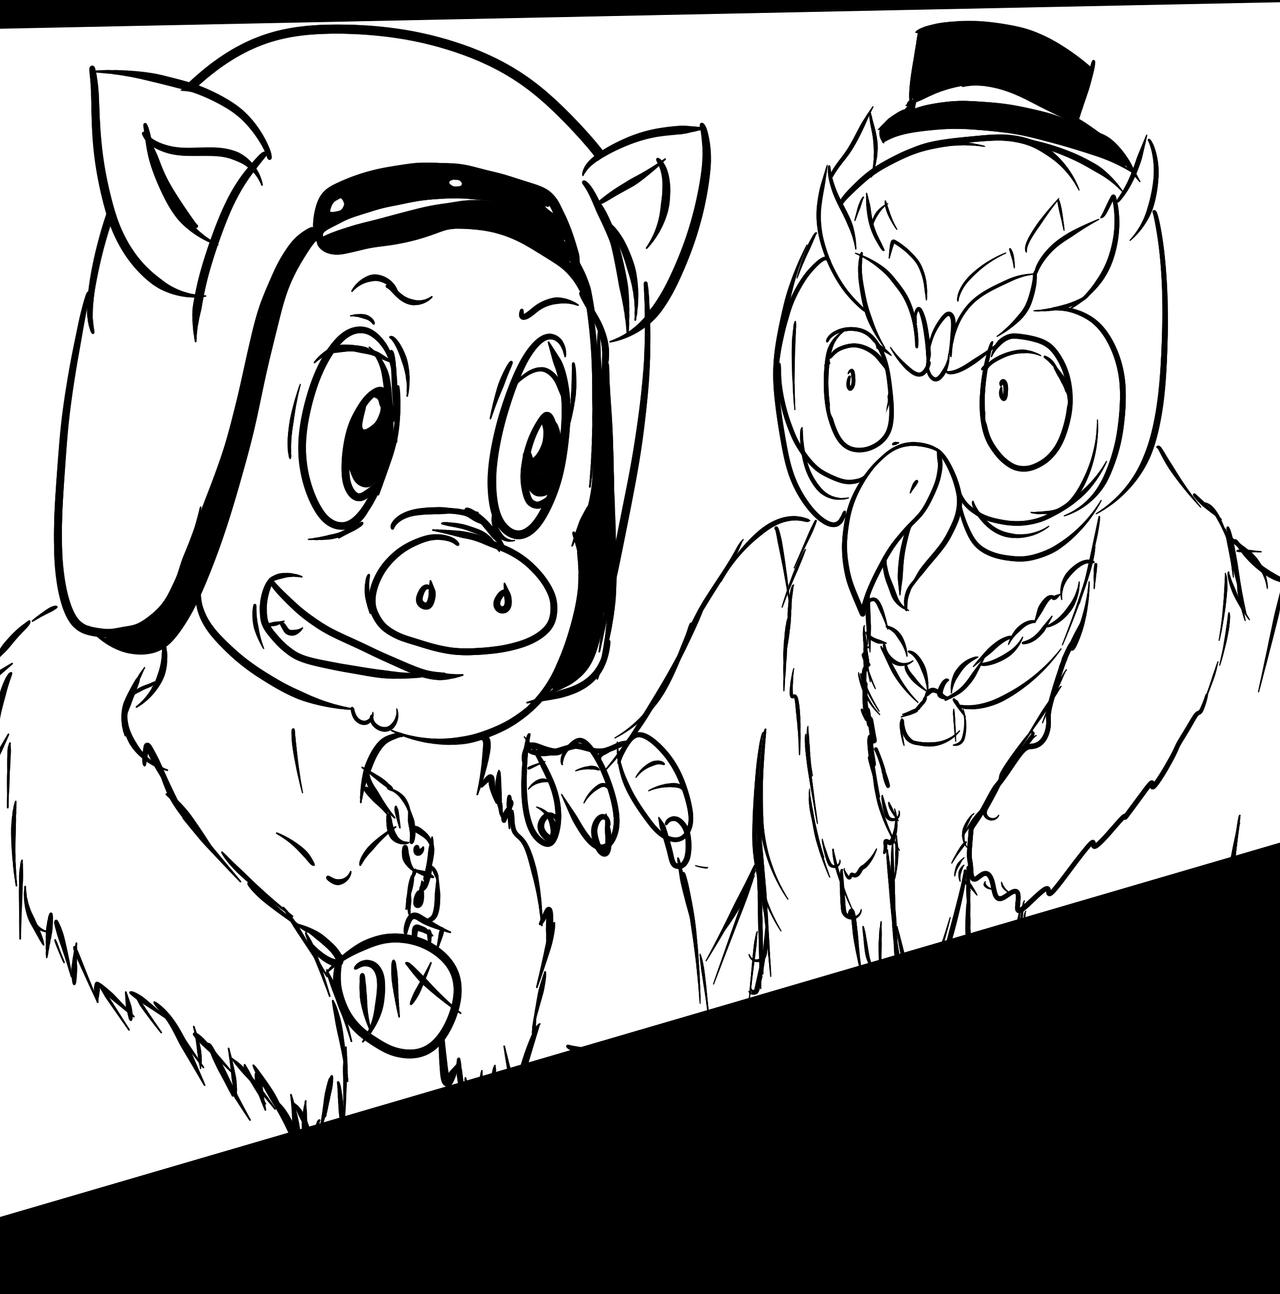 Gta 5 i am wildcat vanoss gaming by xxmarytanya hirosaxx for Wildcat coloring pages